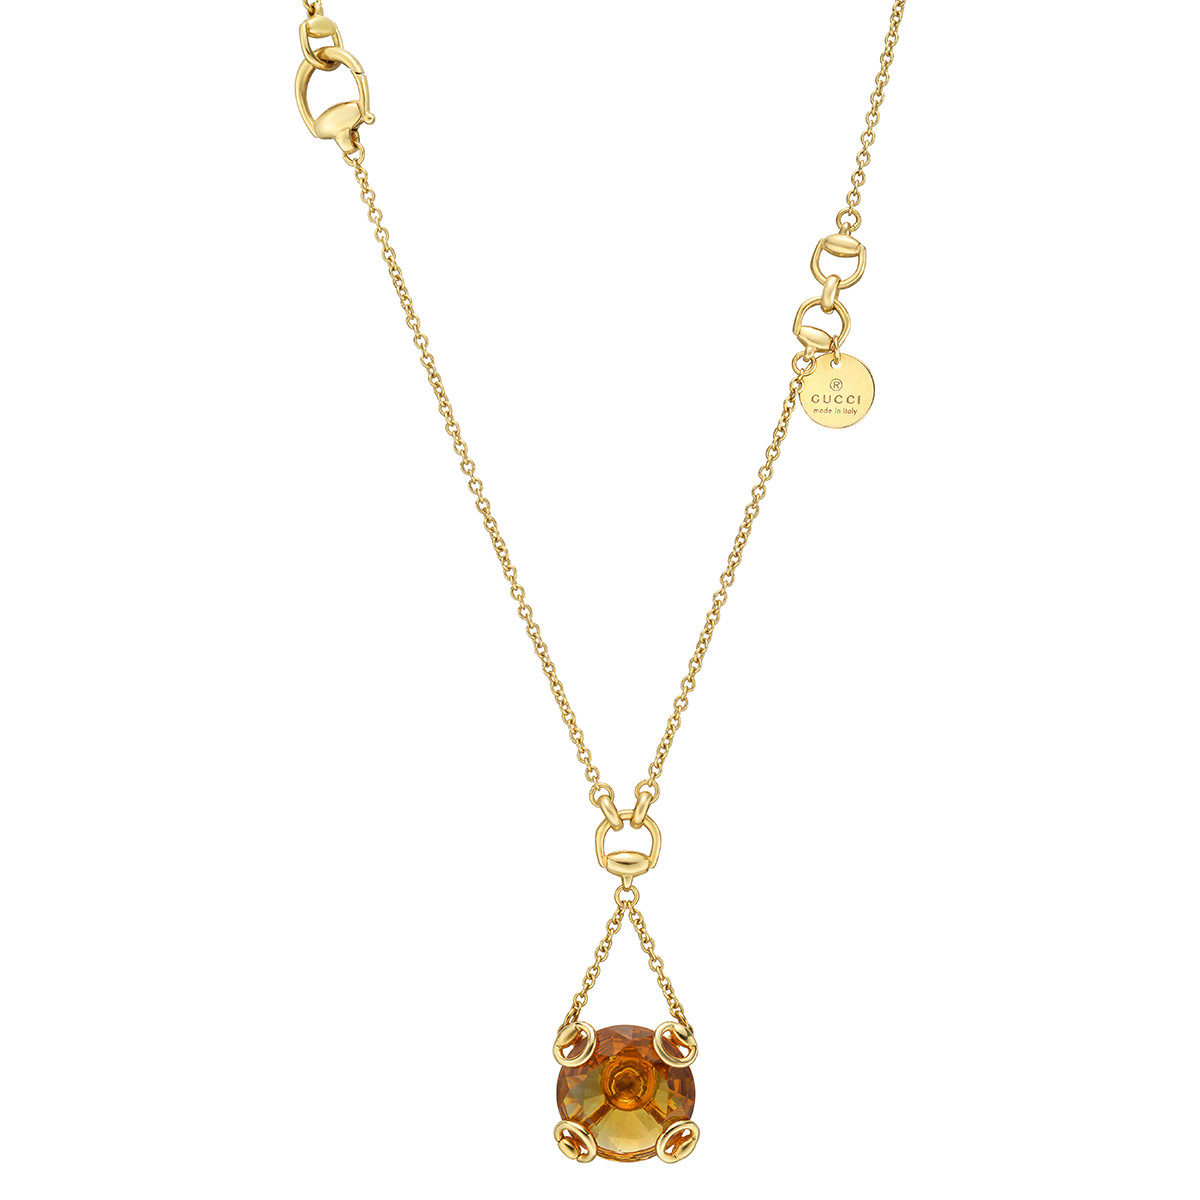 18k Yellow Gold & Citrine Pendant Necklace